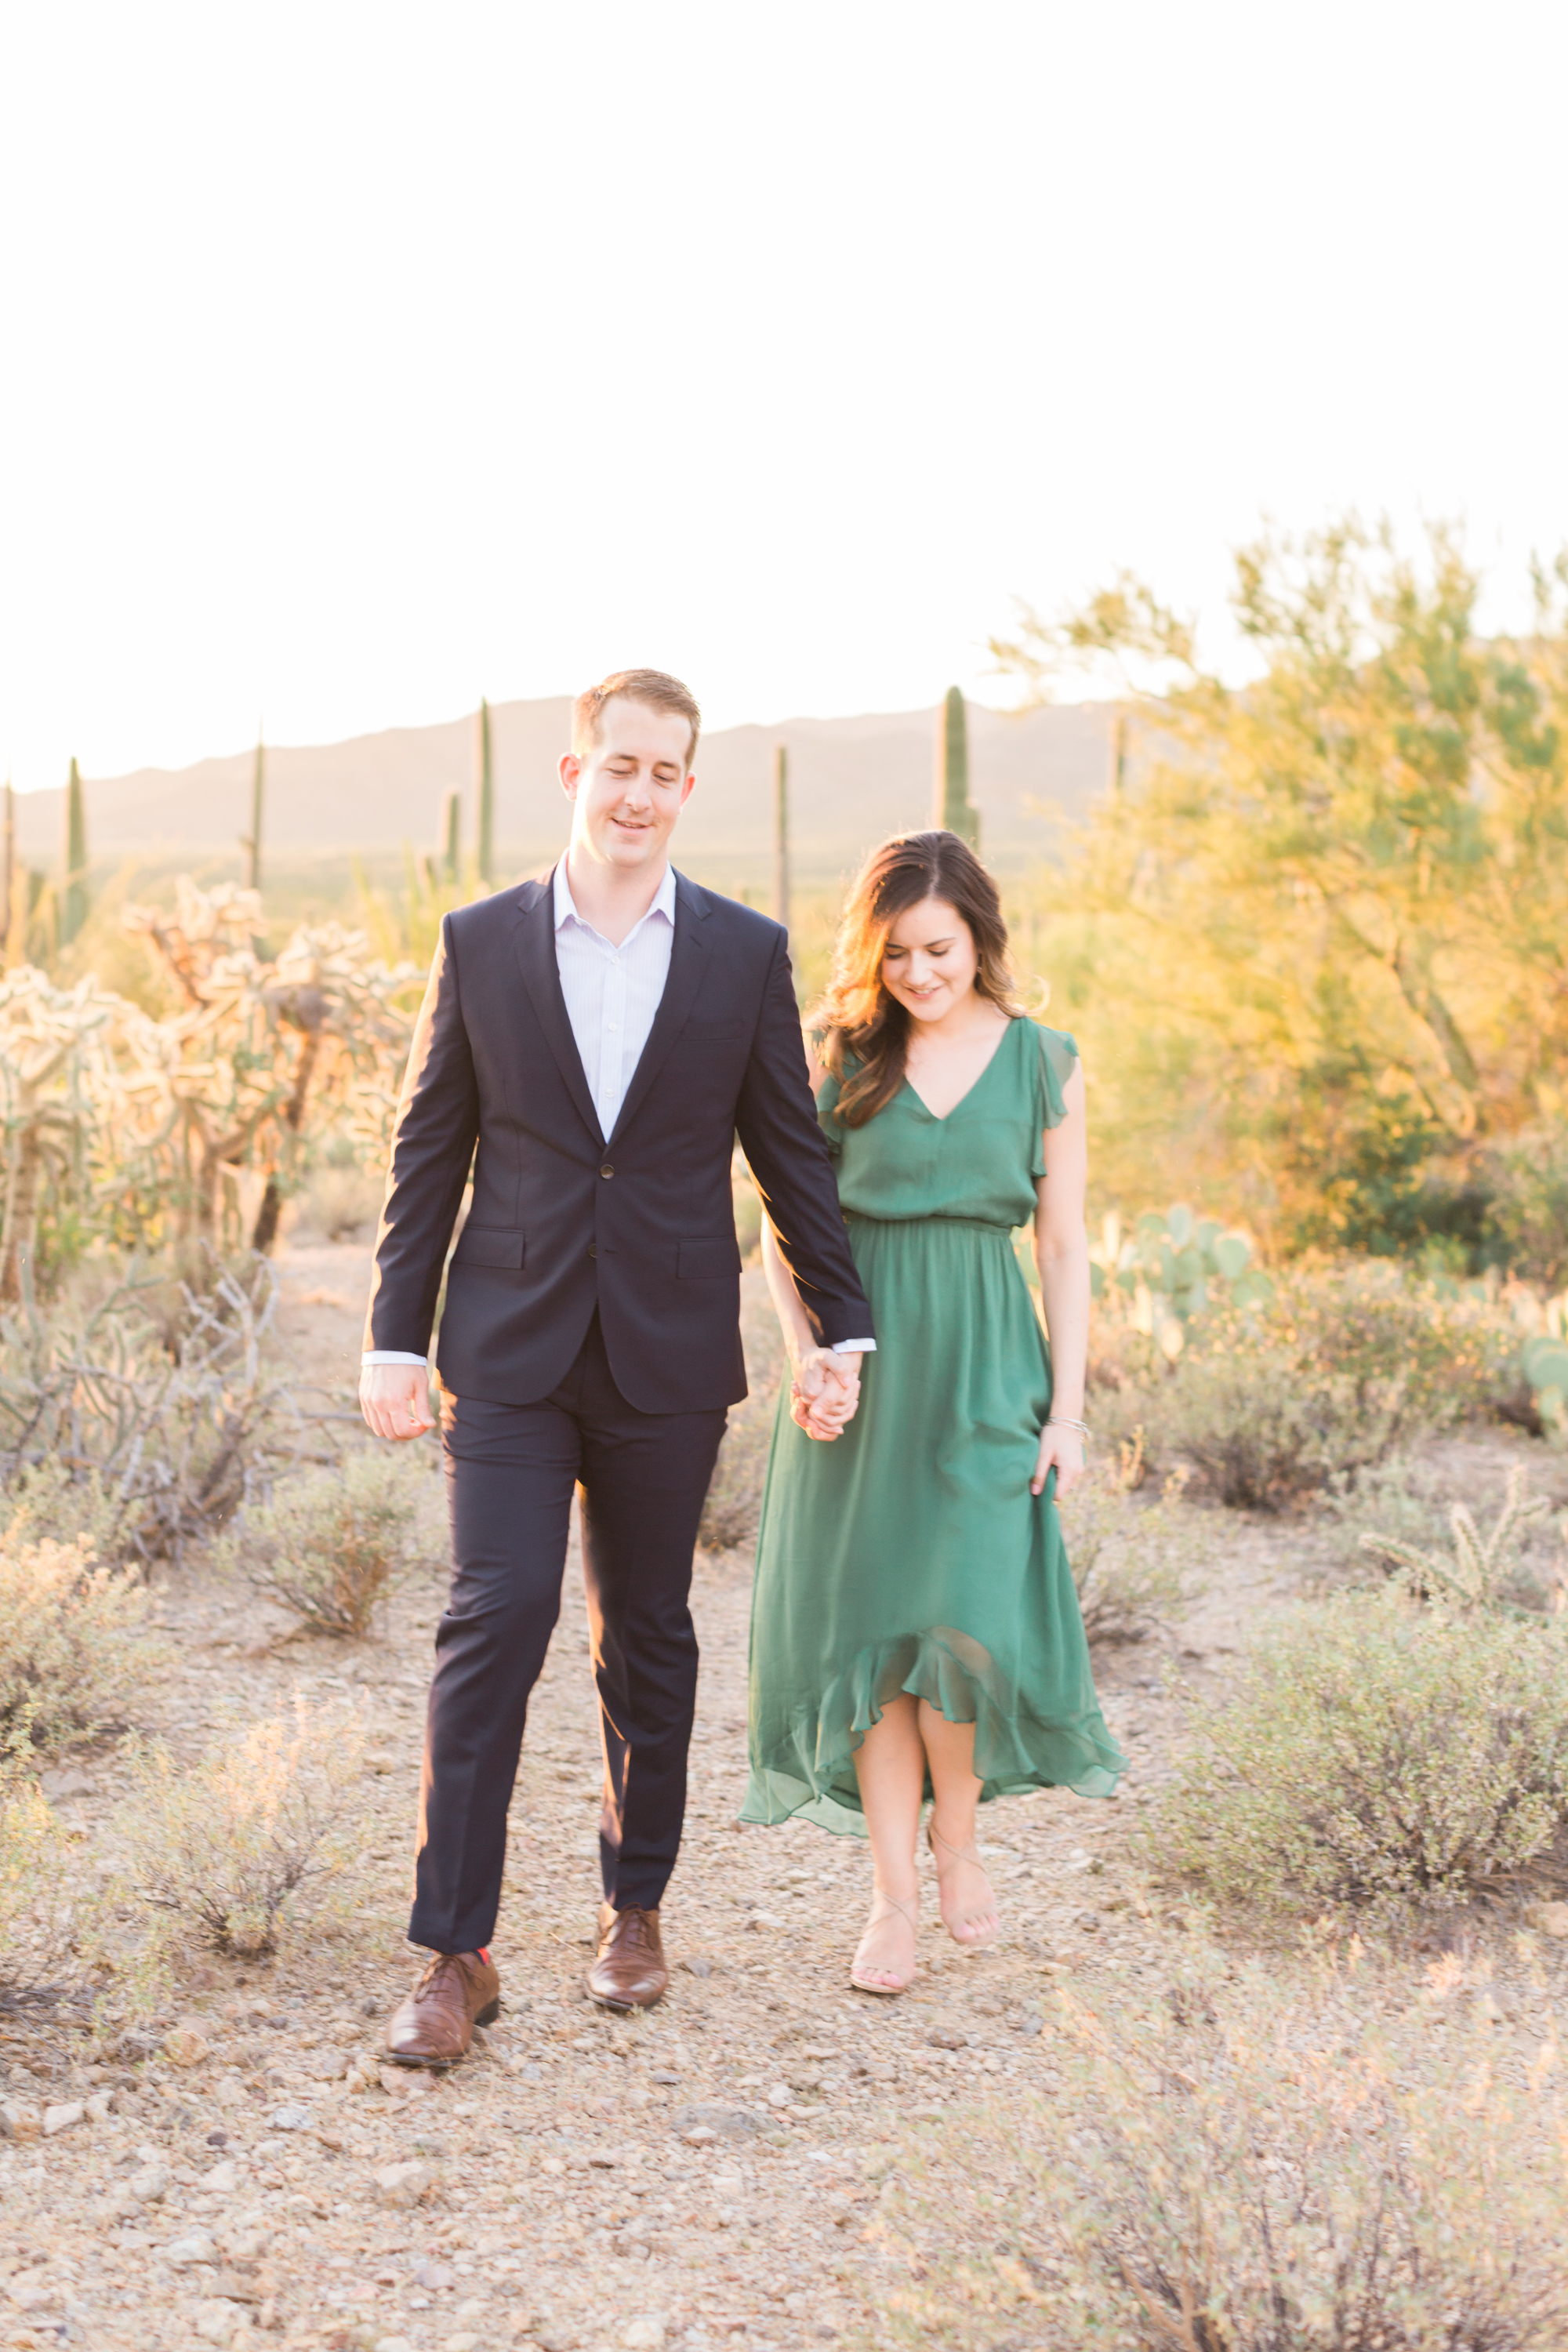 Couple walking in the desert holding hands!